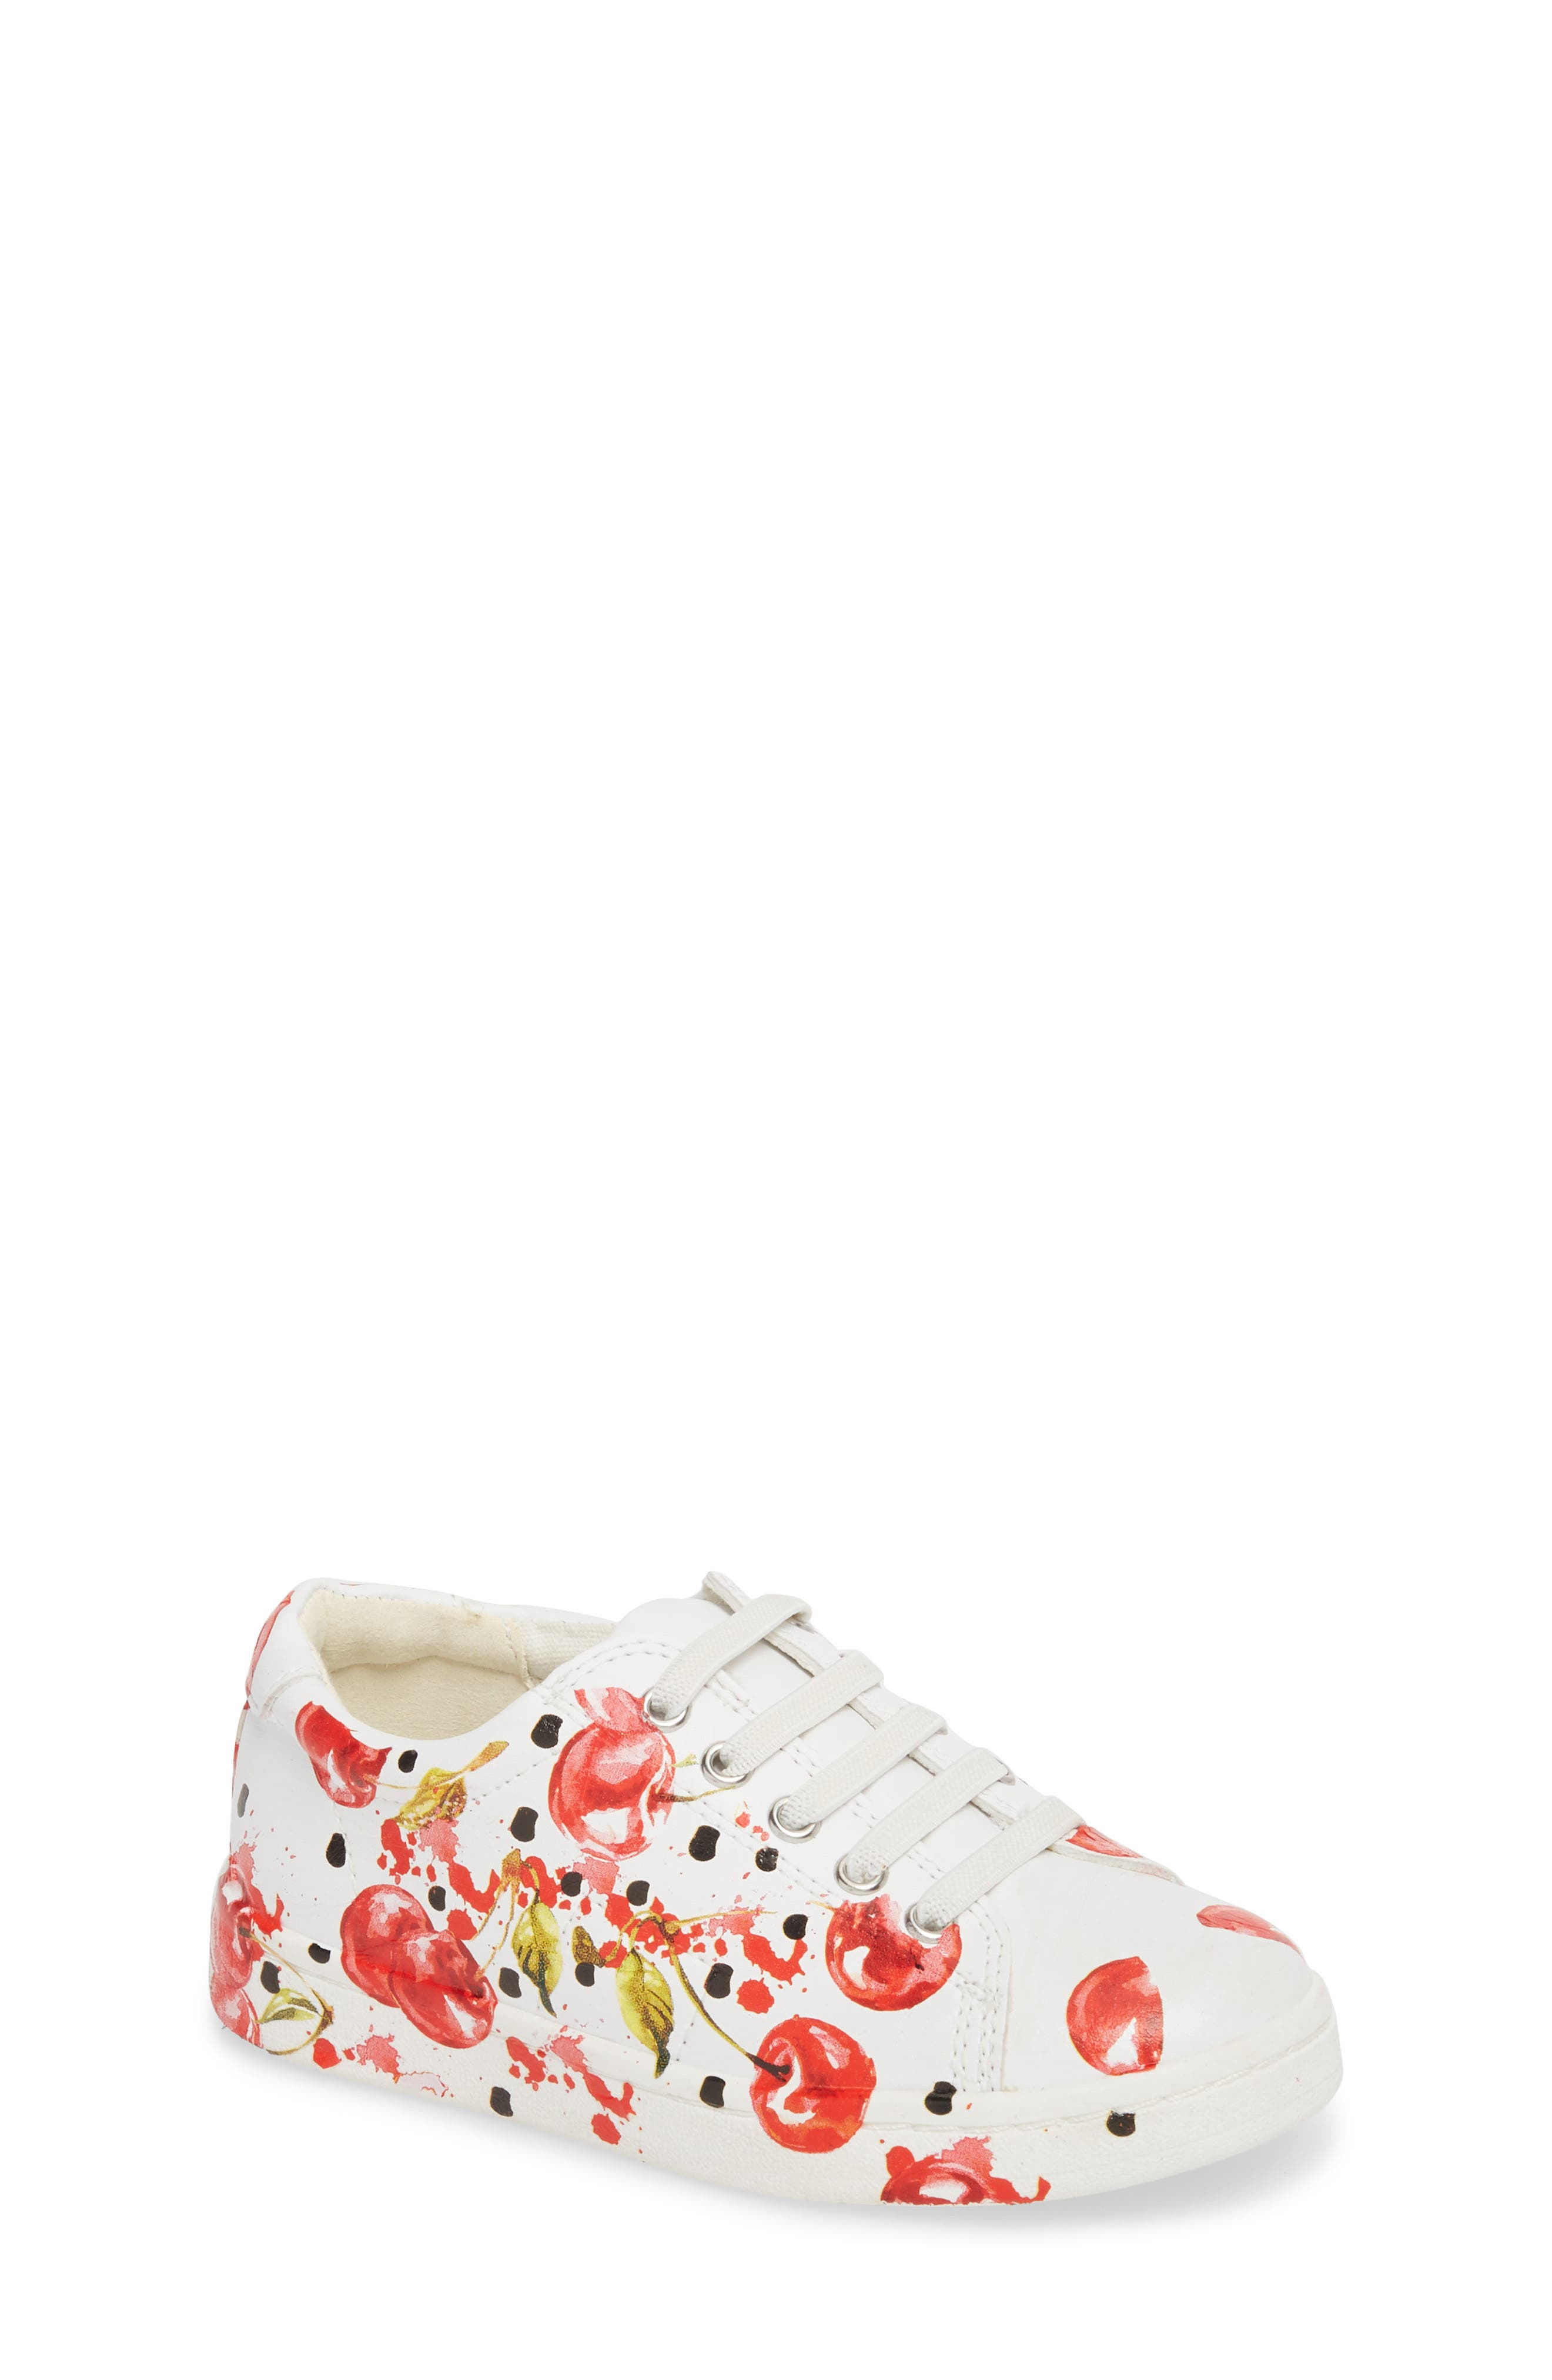 Blane Milford Fruit Print Sneaker,                         Main,                         color, White/ Cherry Faux Leather